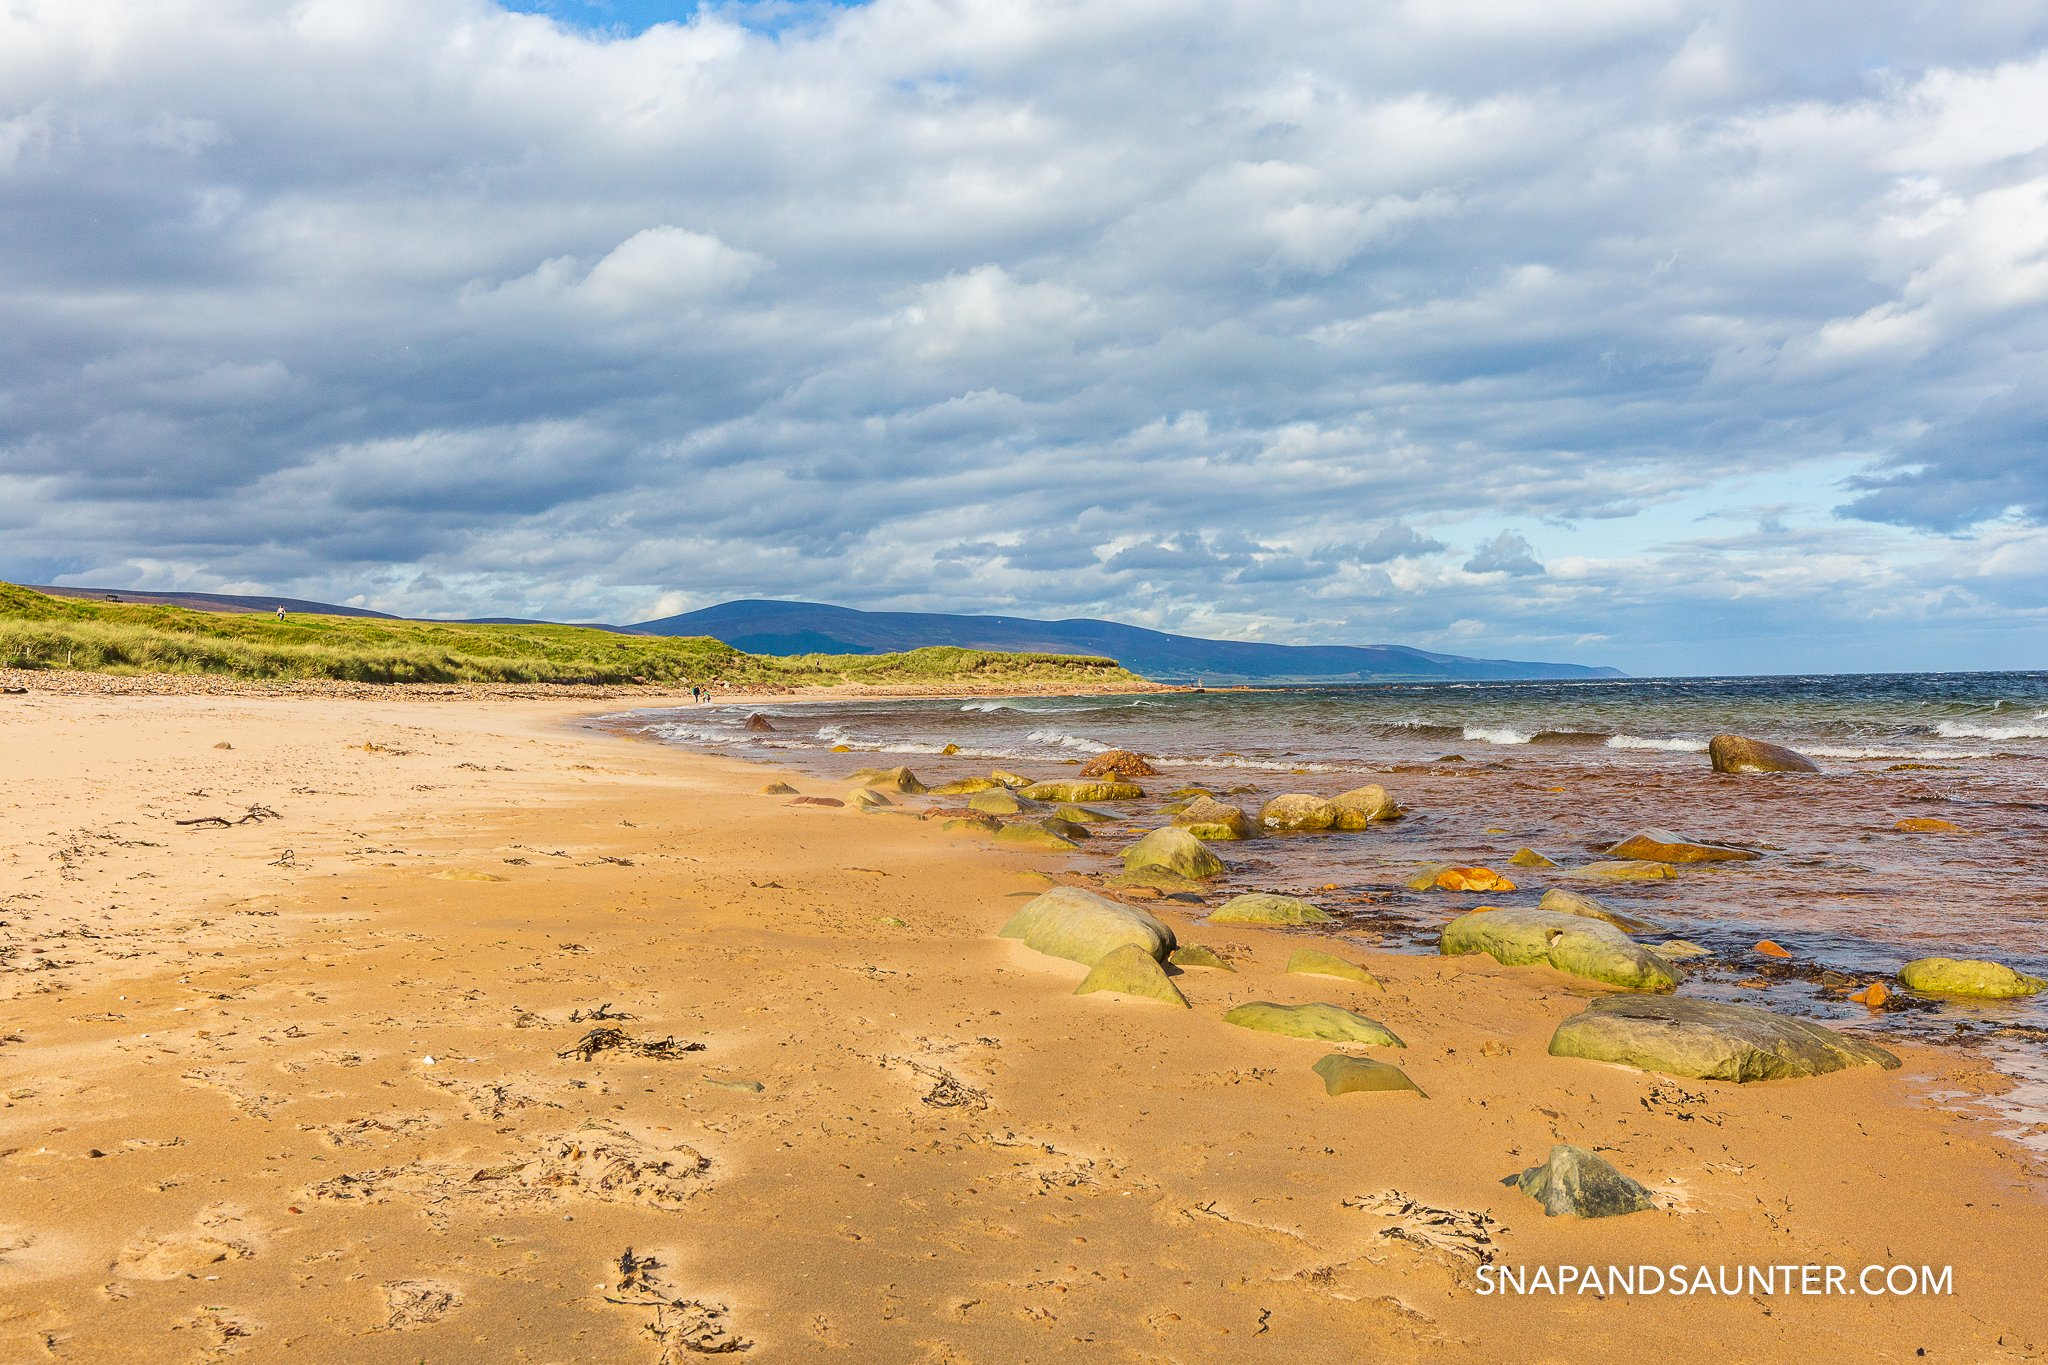 Brora beach in the Scottish Highlands, North Coast 500 road trip. Snap and Saunter with Martina Hardiman.